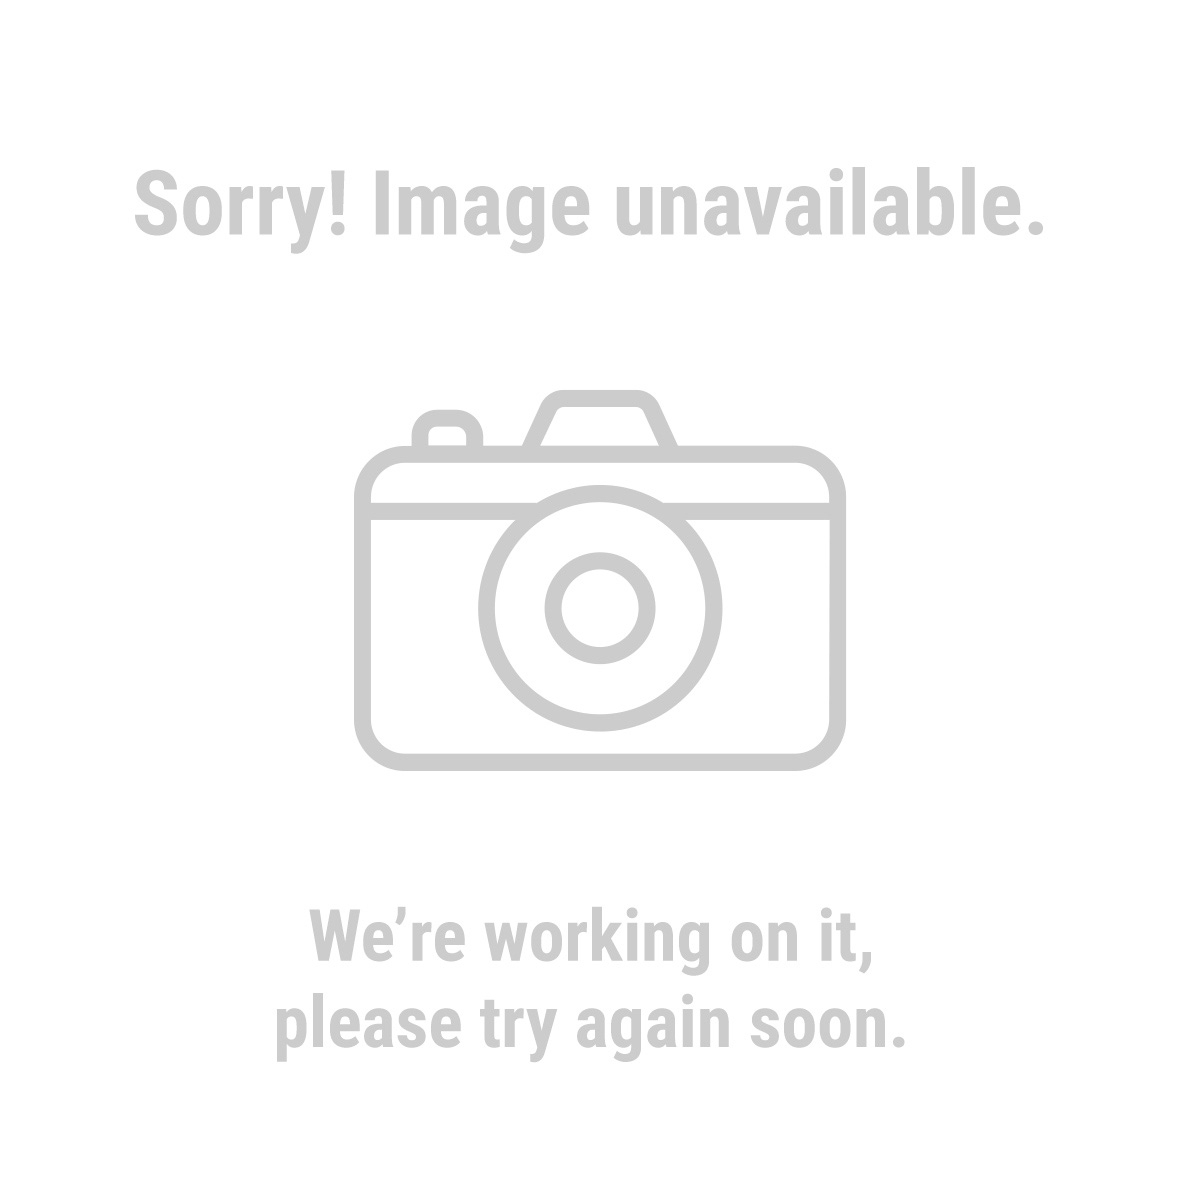 KIDDE 97823 2 lb. Fire Extinguisher - Silver